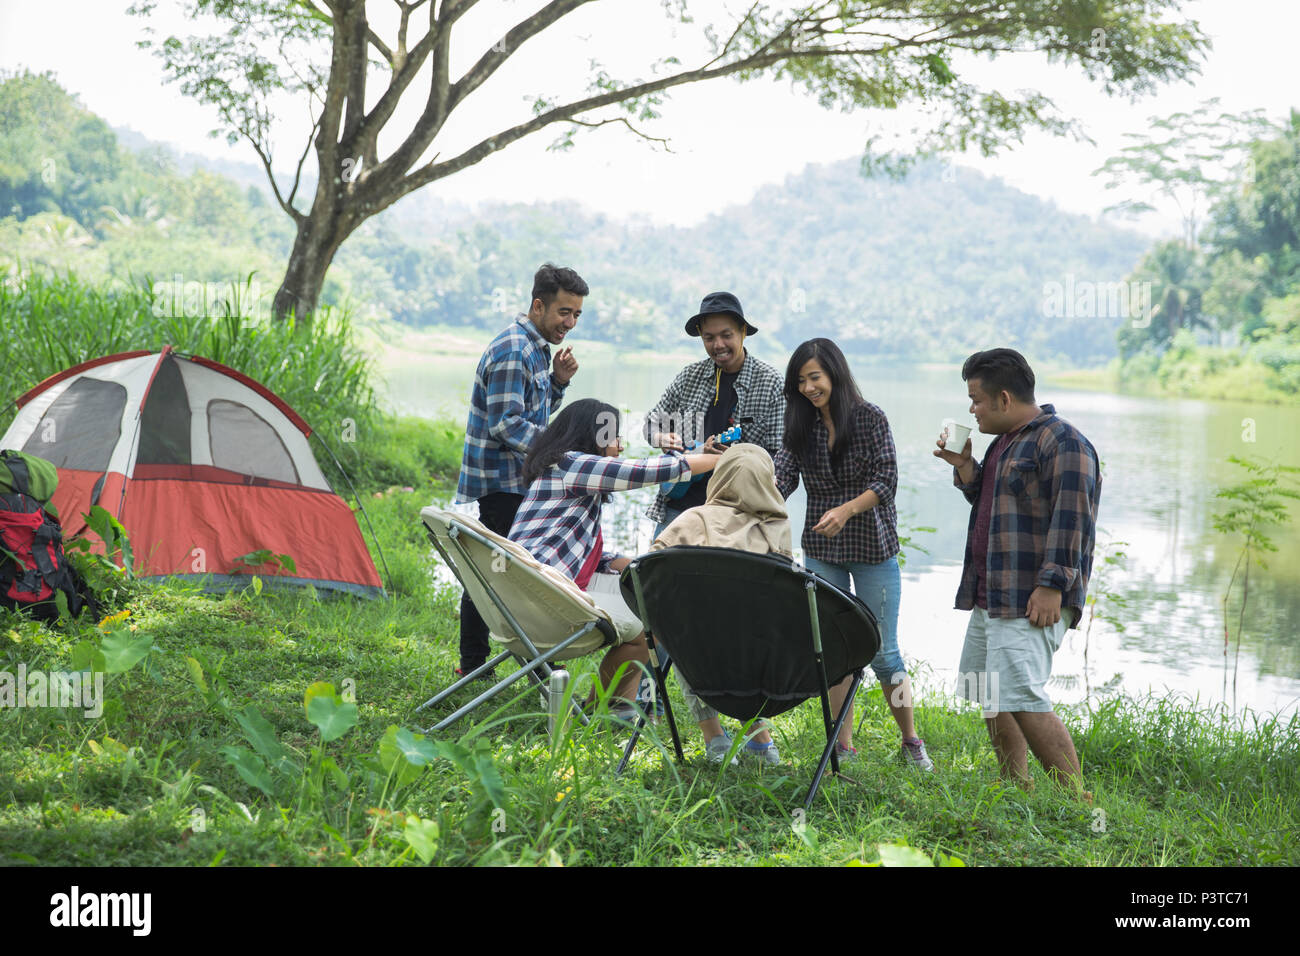 Friends Relaxing Outside Tents On Camping - Stock Image